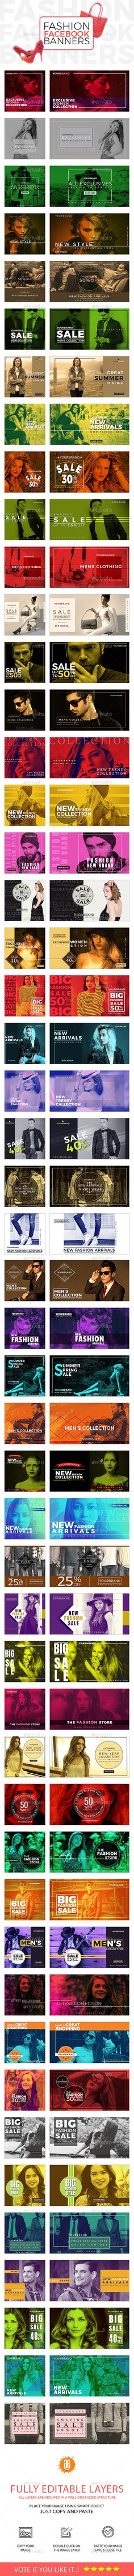 New Ideas Fashion Poster Layout Mixed Media Ad Design, Layout Design, Graphic Design, Social Media Template, Social Media Design, Google Plus, Photoshop Images, Fashion Design Portfolio, Poster Layout